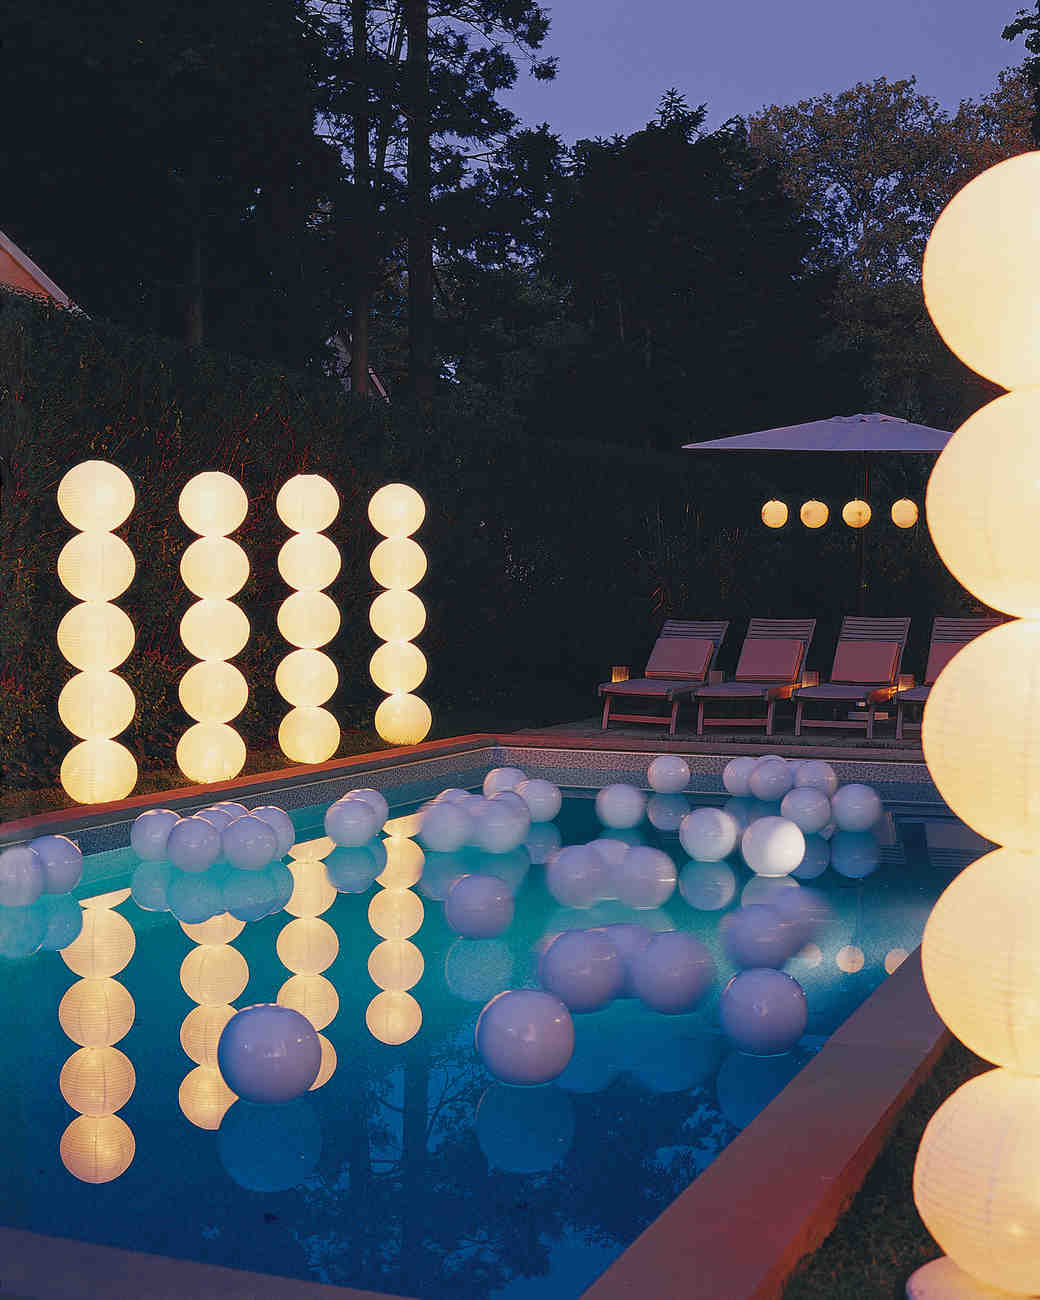 stacked light orbs by pool